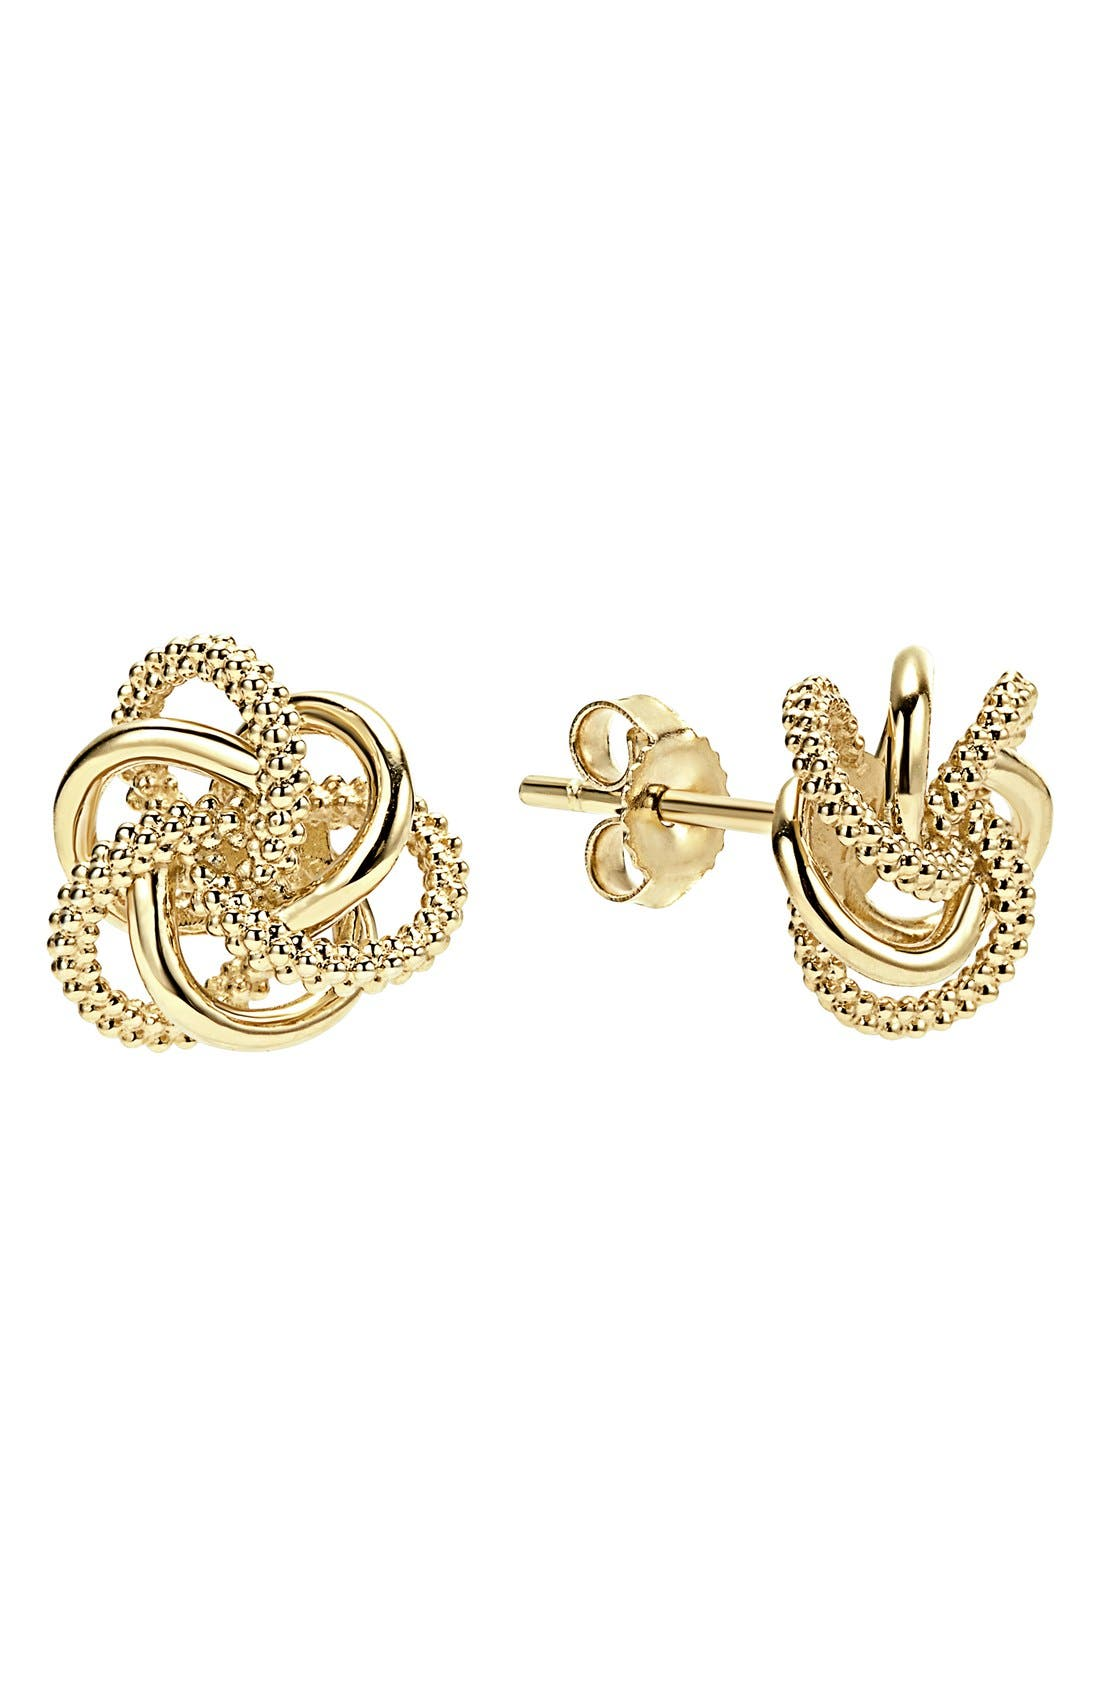 LAGOS Love Knot 18k Gold Stud Earrings